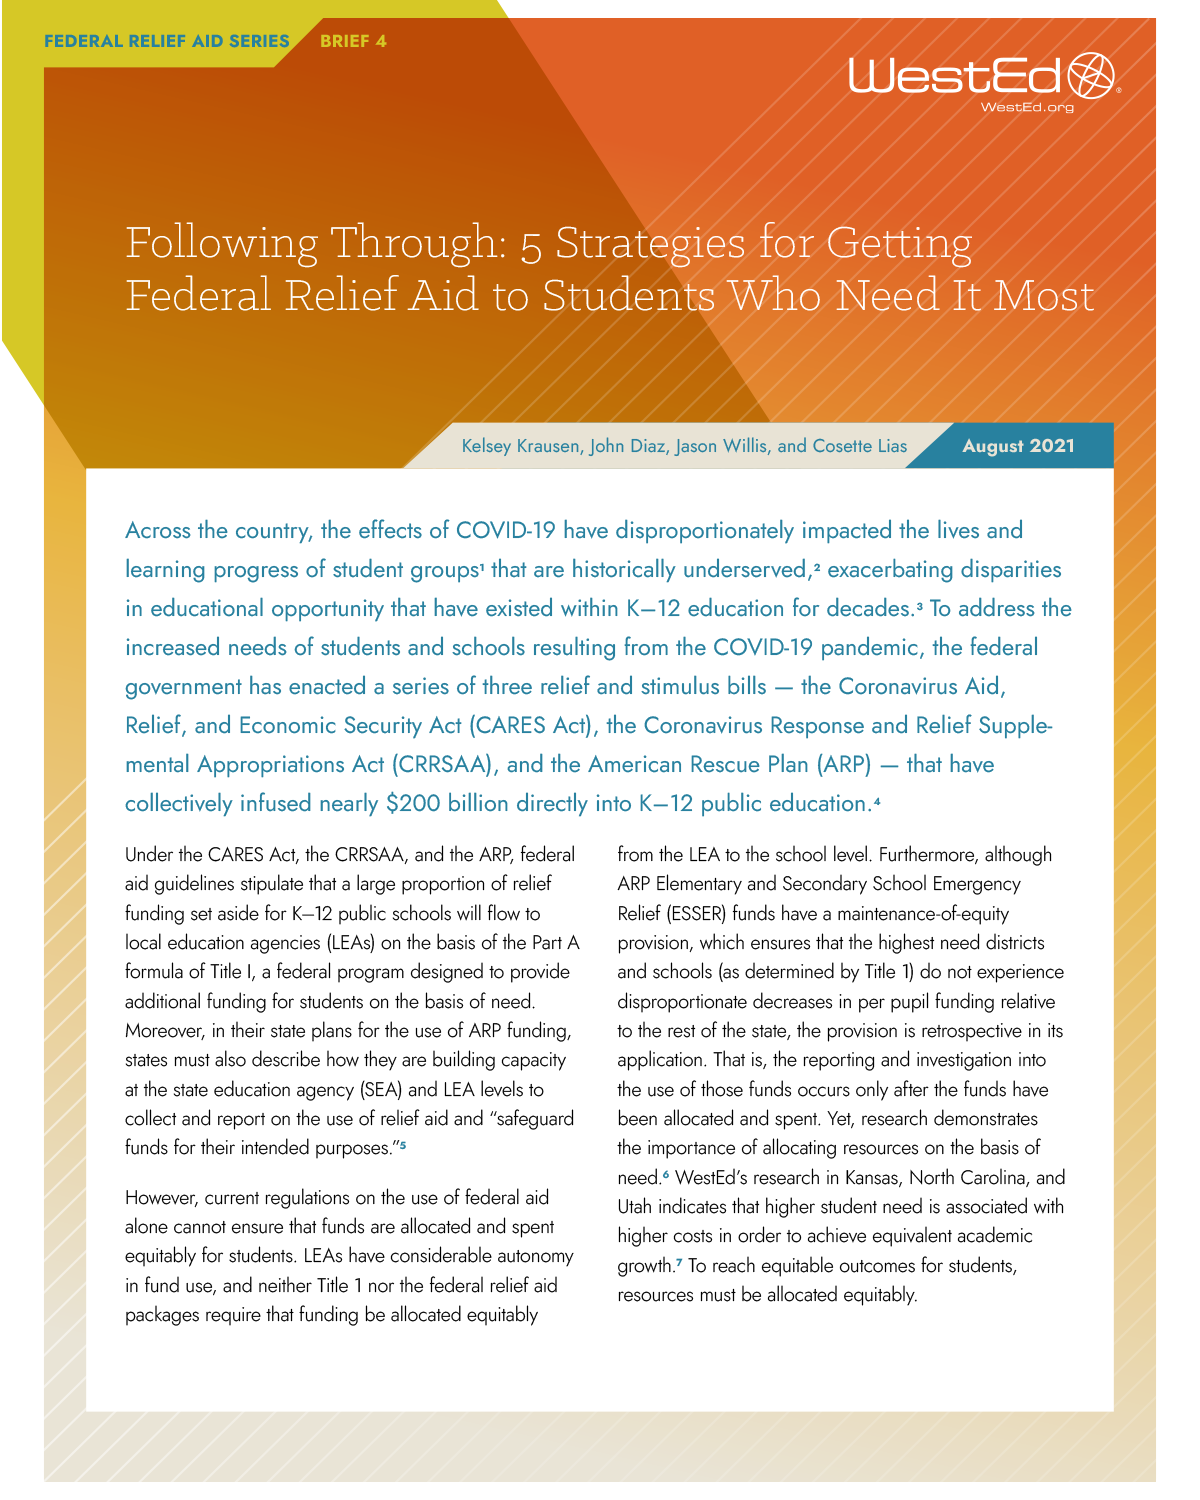 Following Through: 5 Strategies for Getting Federal Relief Aid to Students Who Need It Most